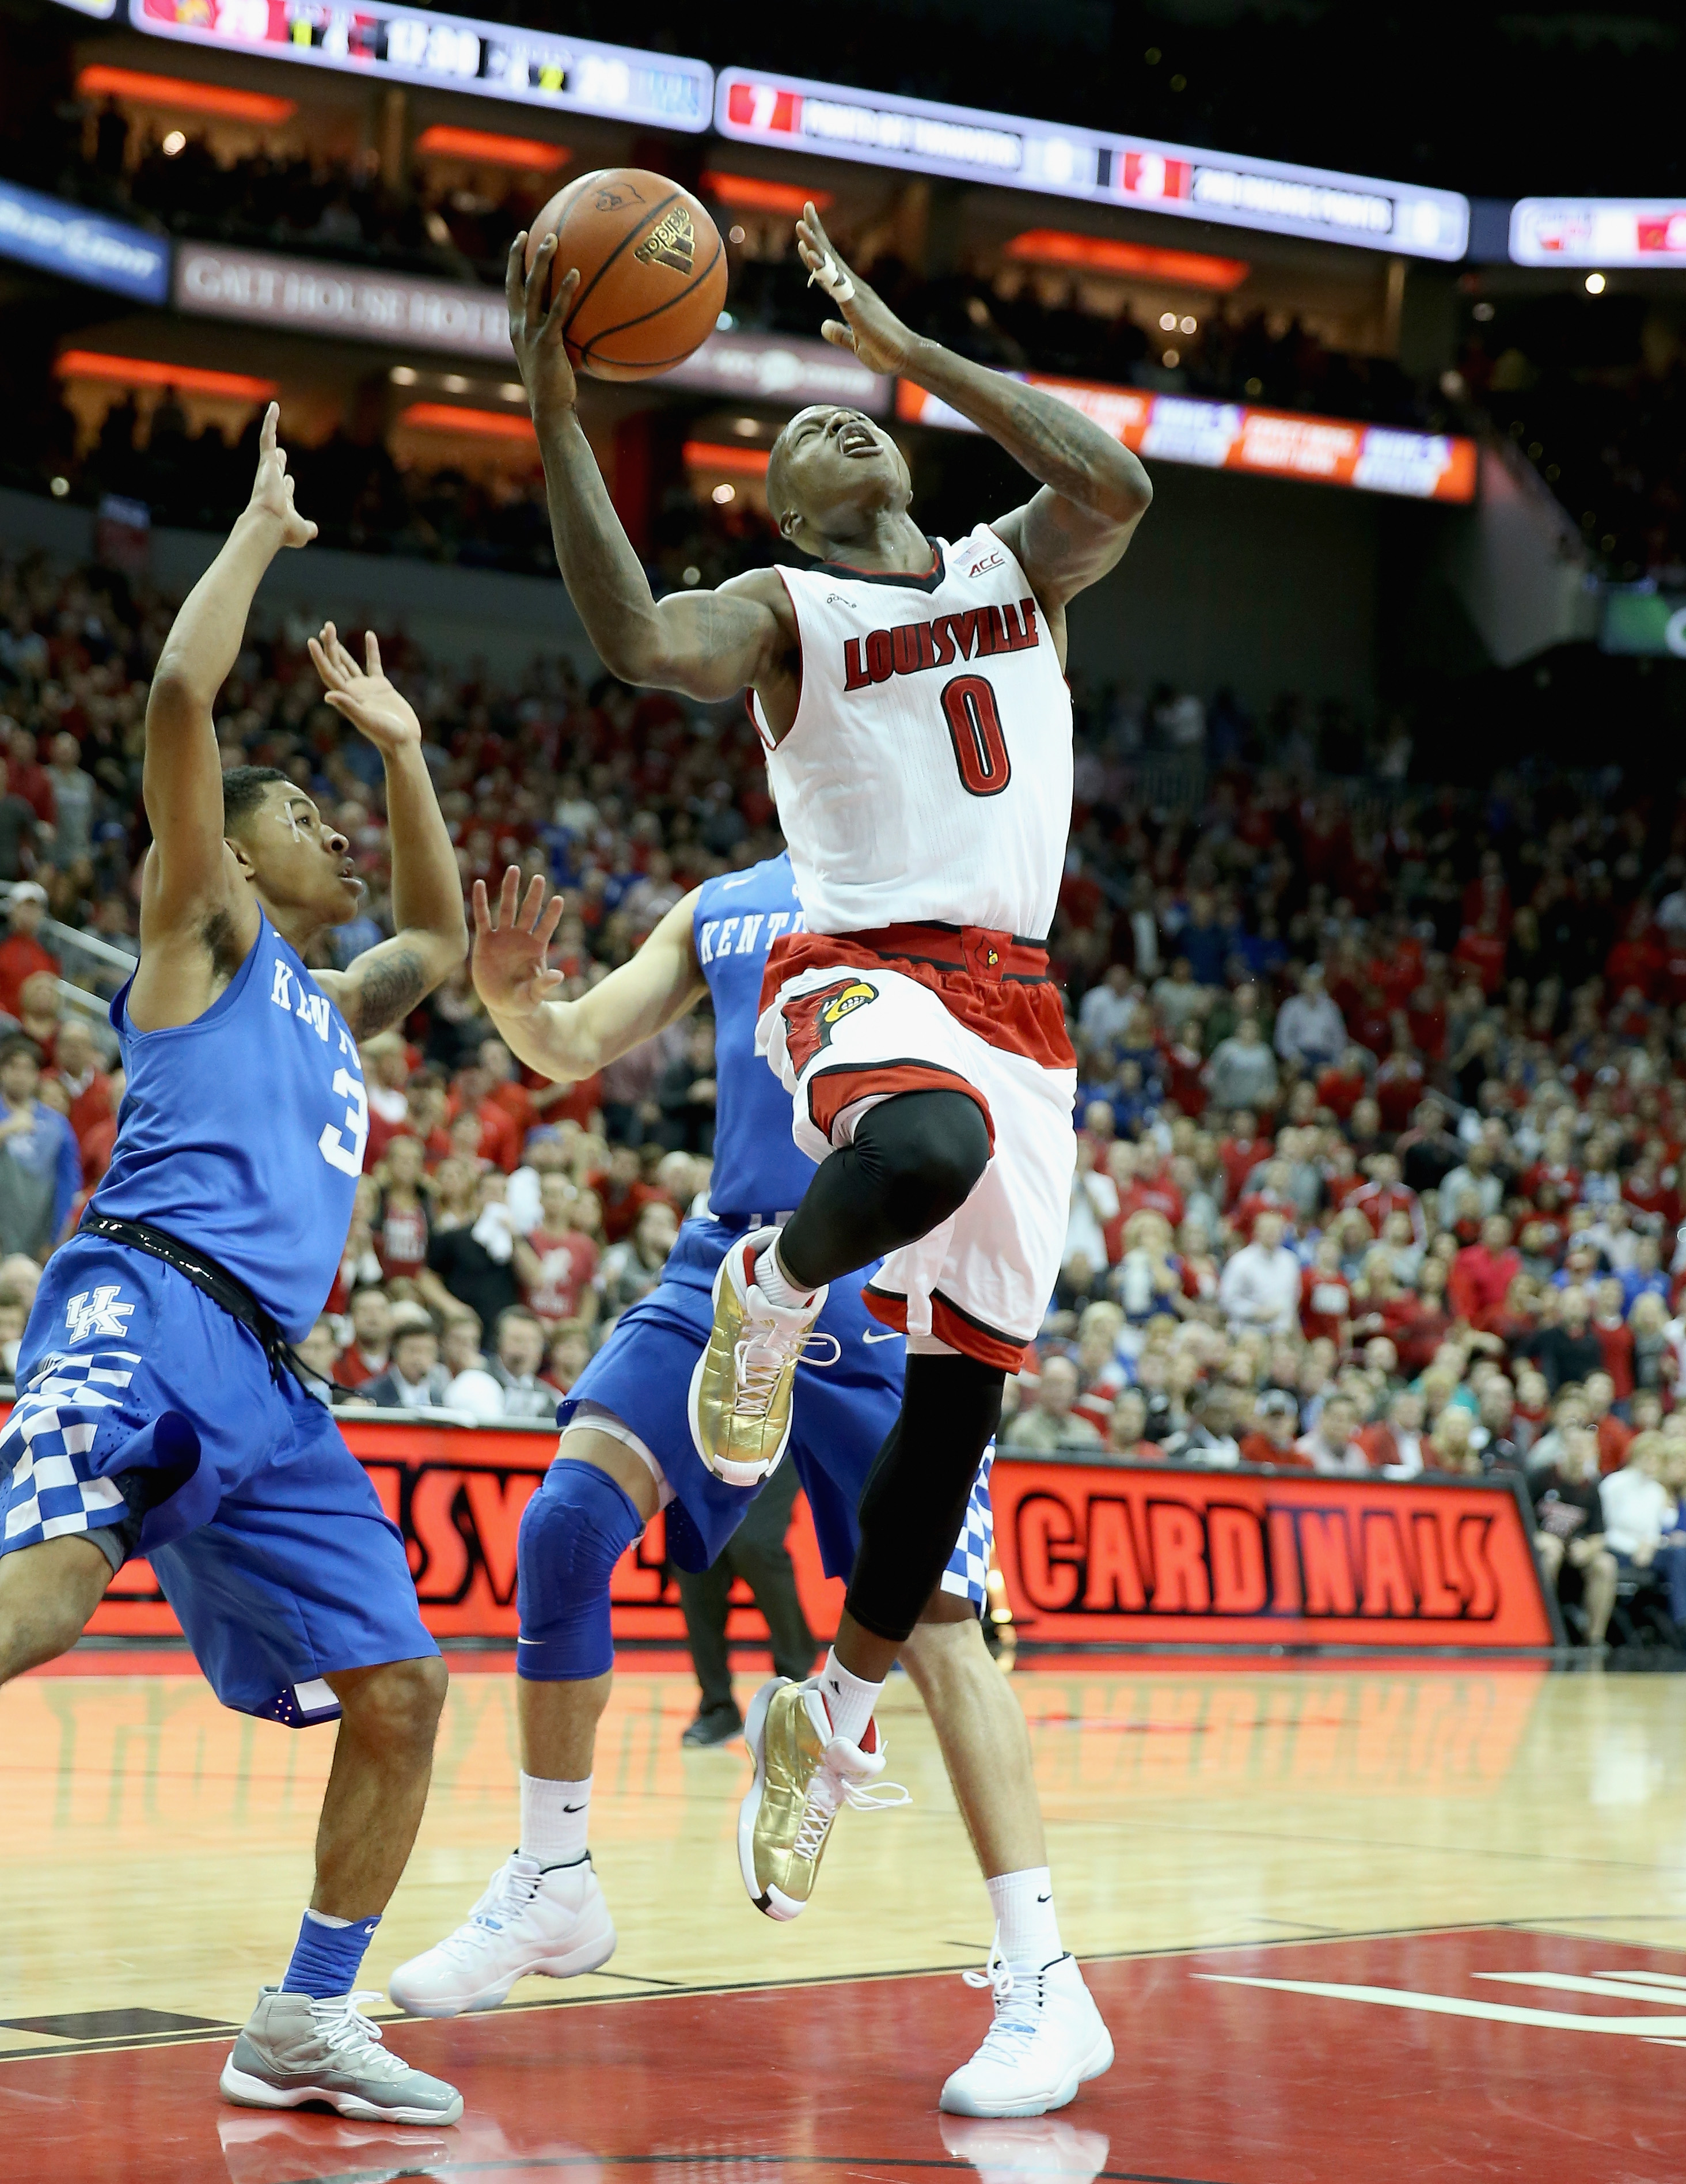 Terry Rozier #0 of the Louisville Cardinals shoots the ball during the game against the  Kentucky Wildcats at KFC YUM! Center on December 27, 2014 in Louisville, Kentucky.